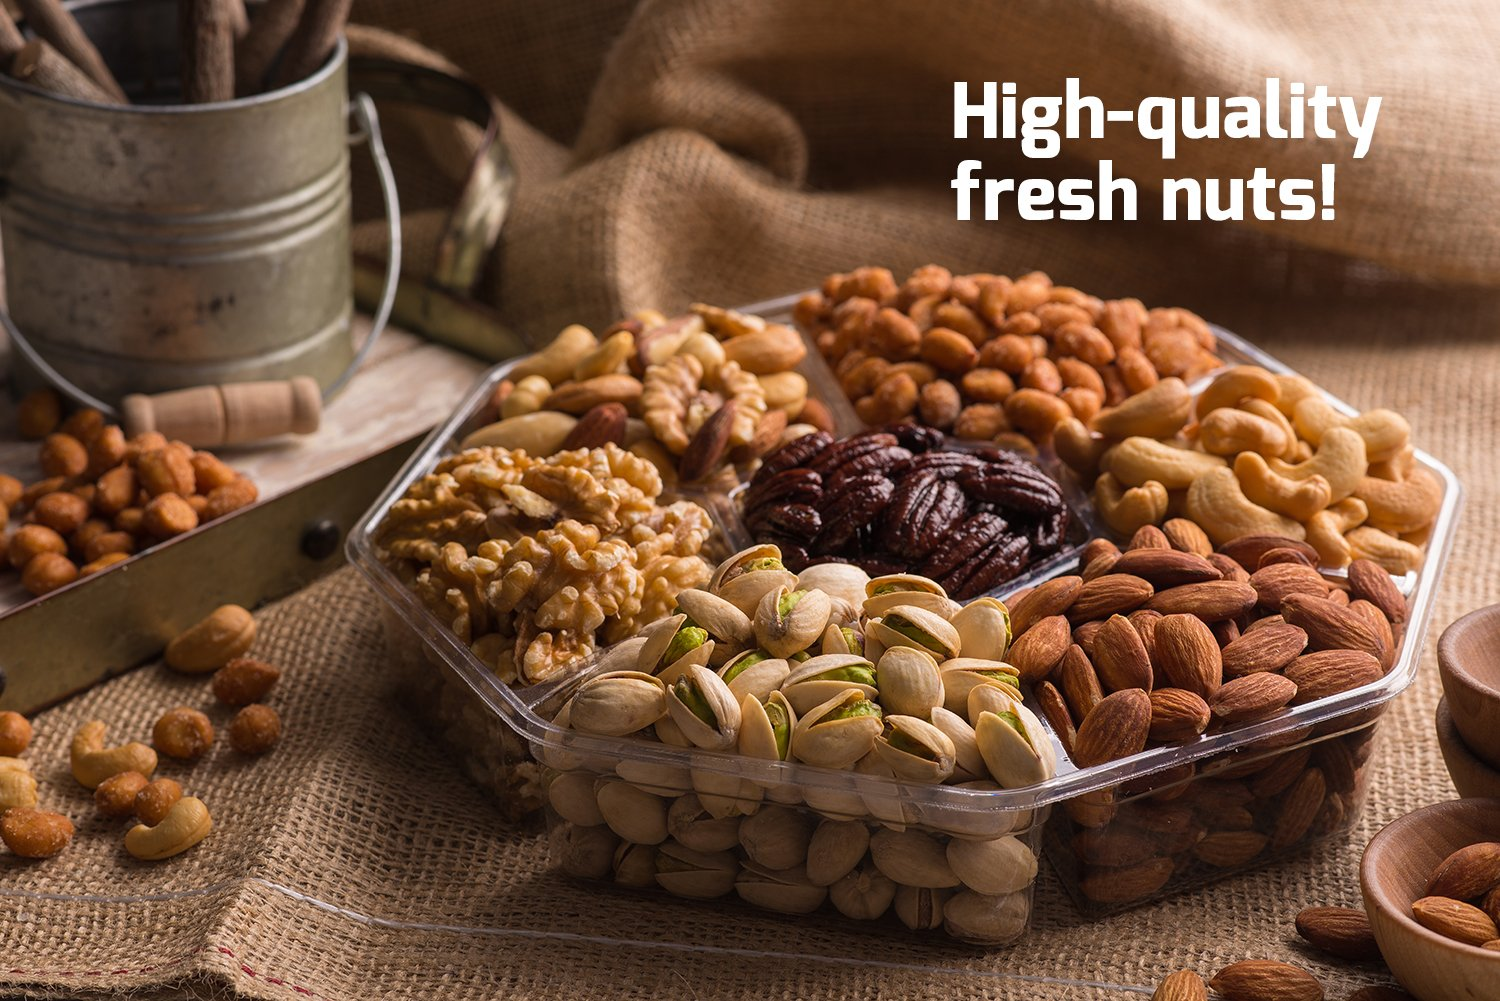 Mother's Day Nuts Gift Basket | Large 7-Sectional Delicious Variety Mixed Nuts Prime Gift | Healthy Fresh Gift Idea For Christmas, Easter, Mothers & Fathers Day, And Birthday by Nut Cravings (Image #4)